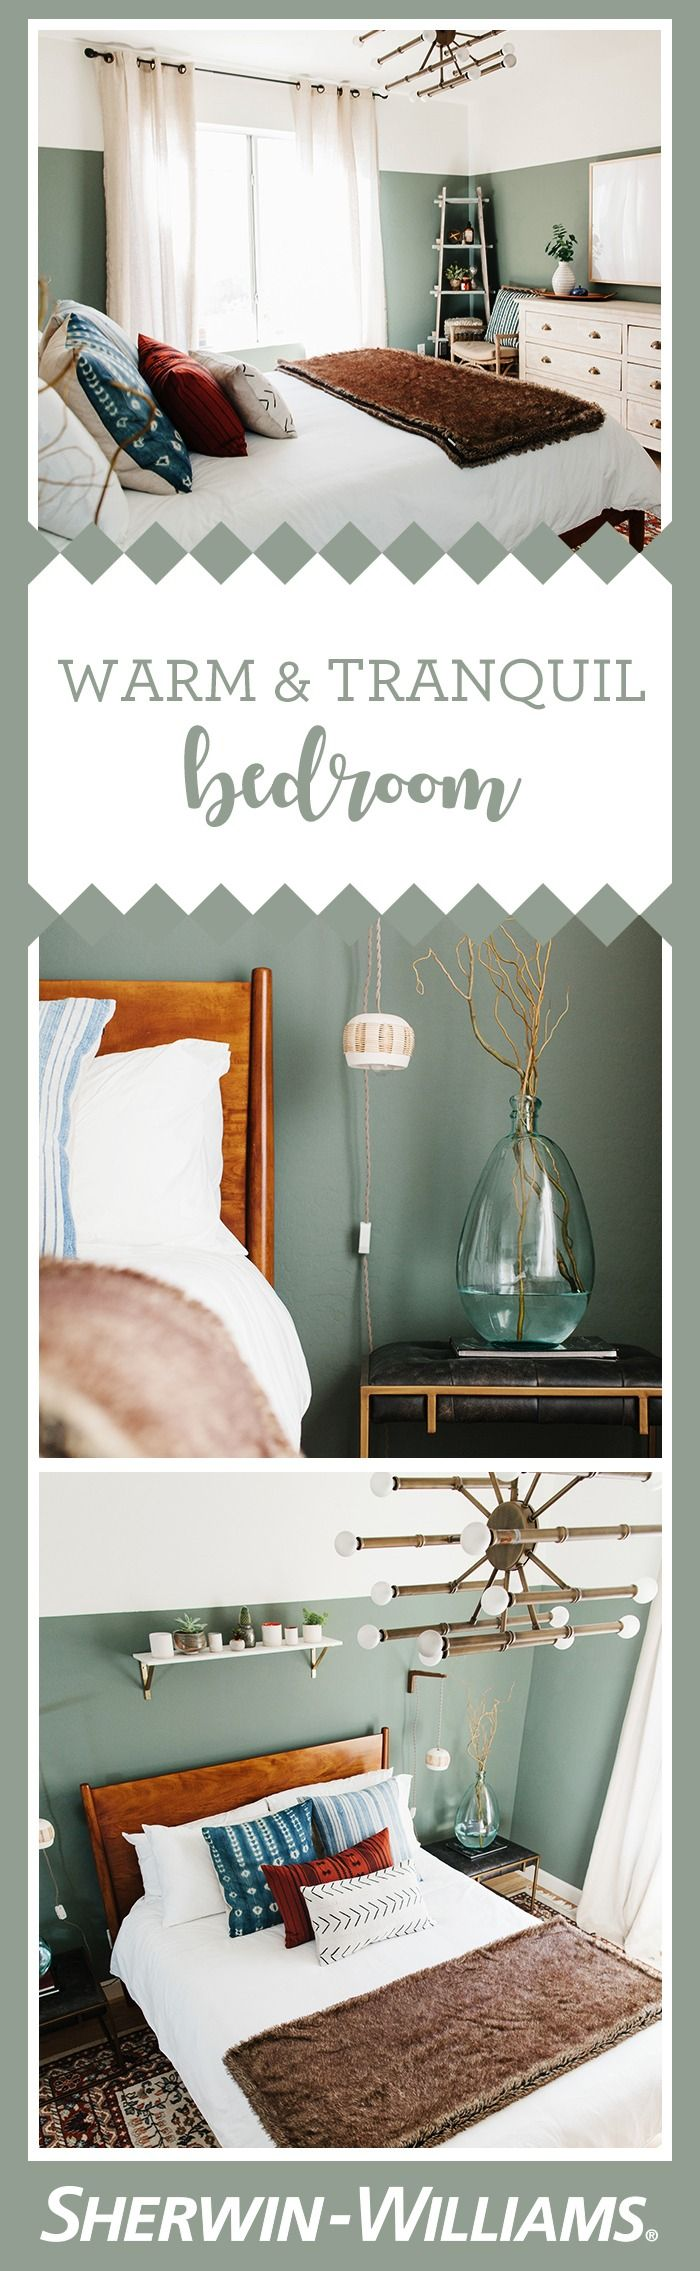 Words like dreamy, warm and tranquil perfectly encapsulate this guest room by @alexandraevjen. From the mid-century bed frame to the traditional oriental rug to the eclectic light fixtures, there's a lot to love about this guest room. An earthy palette of creams, browns, blues and rust colors come together to complement the sage green walls in Retreat SW 6207. Photos by @rennaihoefer.